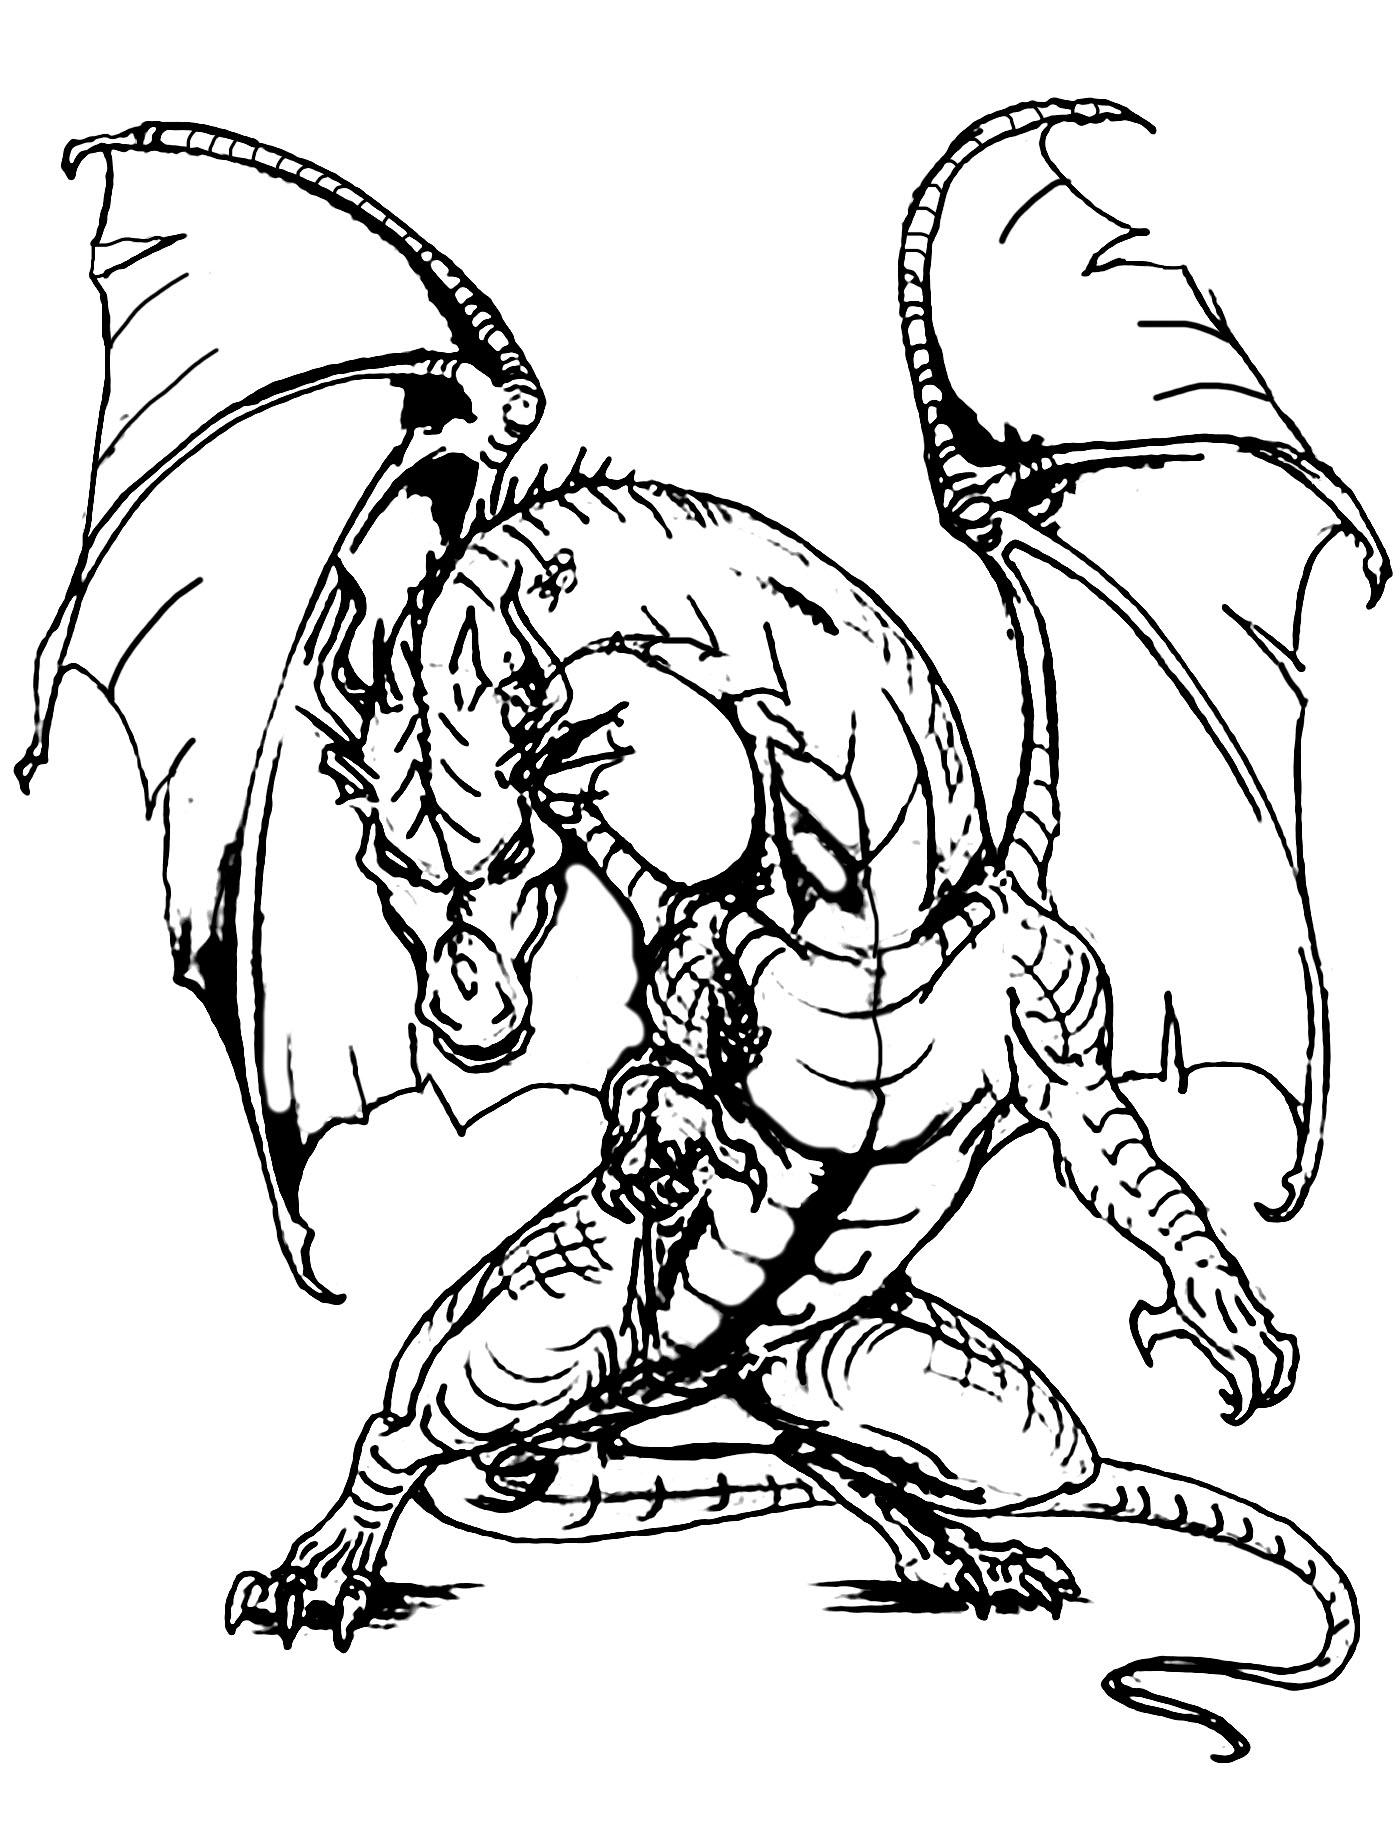 dragon for coloring dragon coloring pages 2018 dr odd dragon for coloring